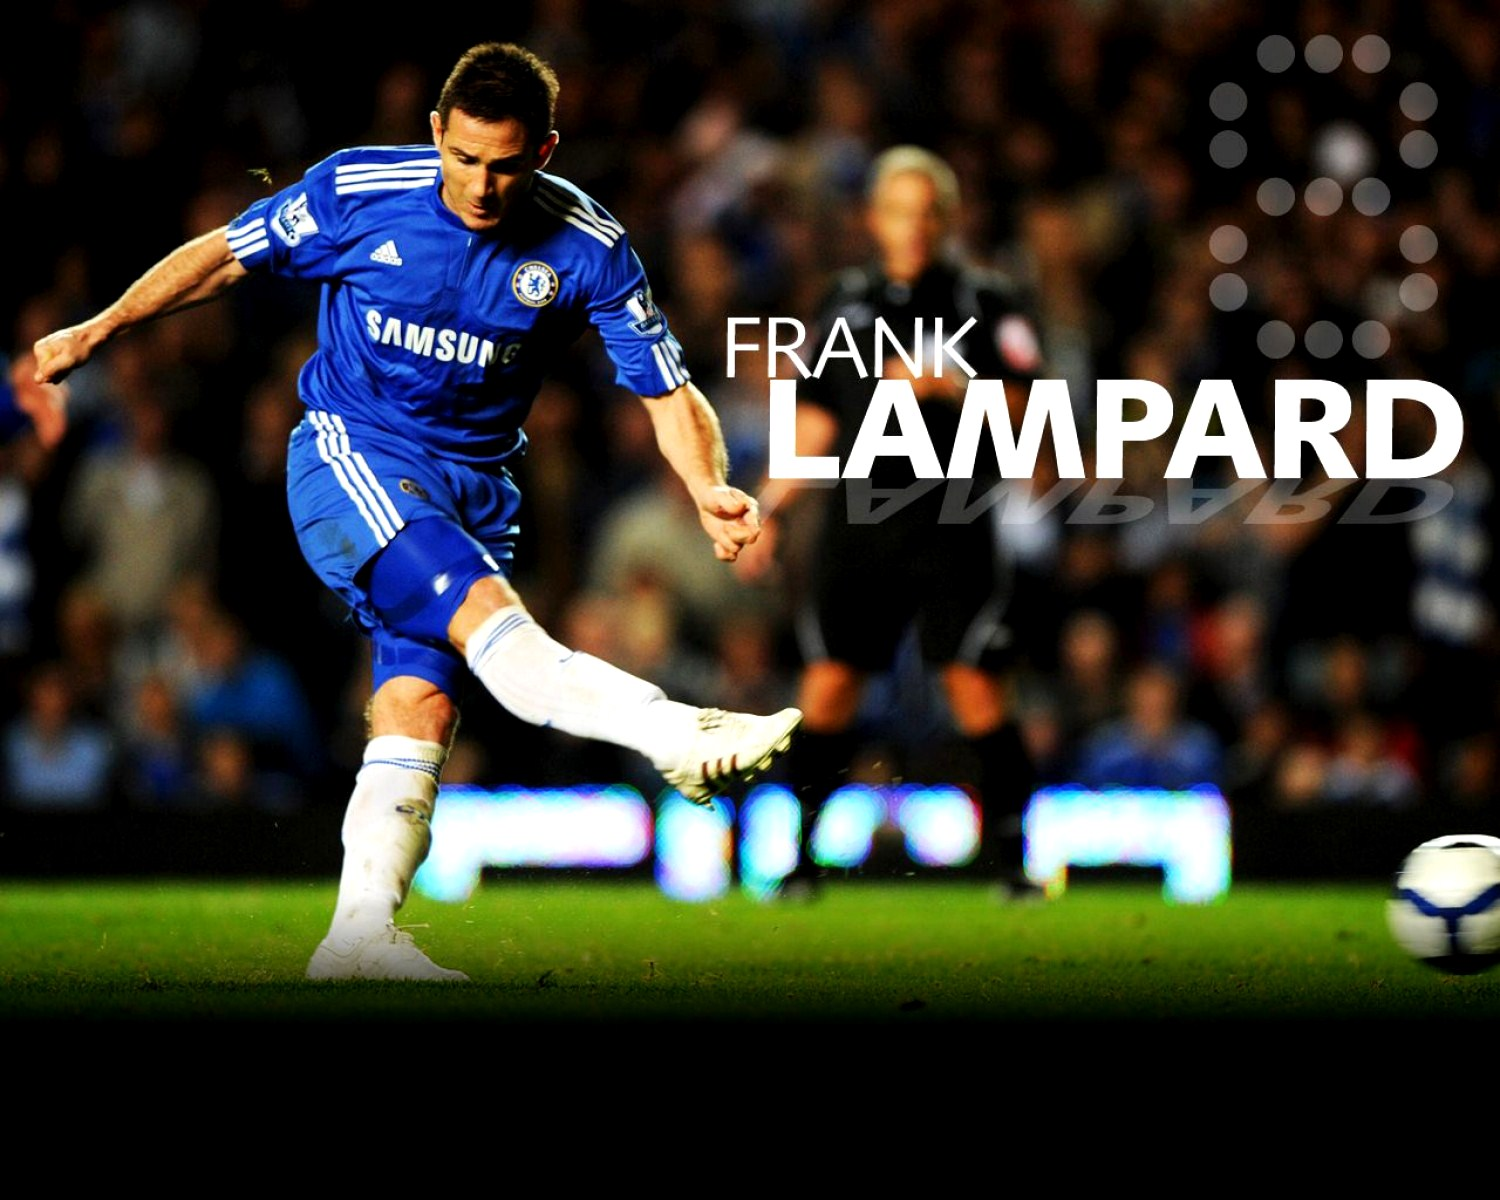 Frank Lampard New Hd Wallpapers 2013 All About Hd Wallpapers